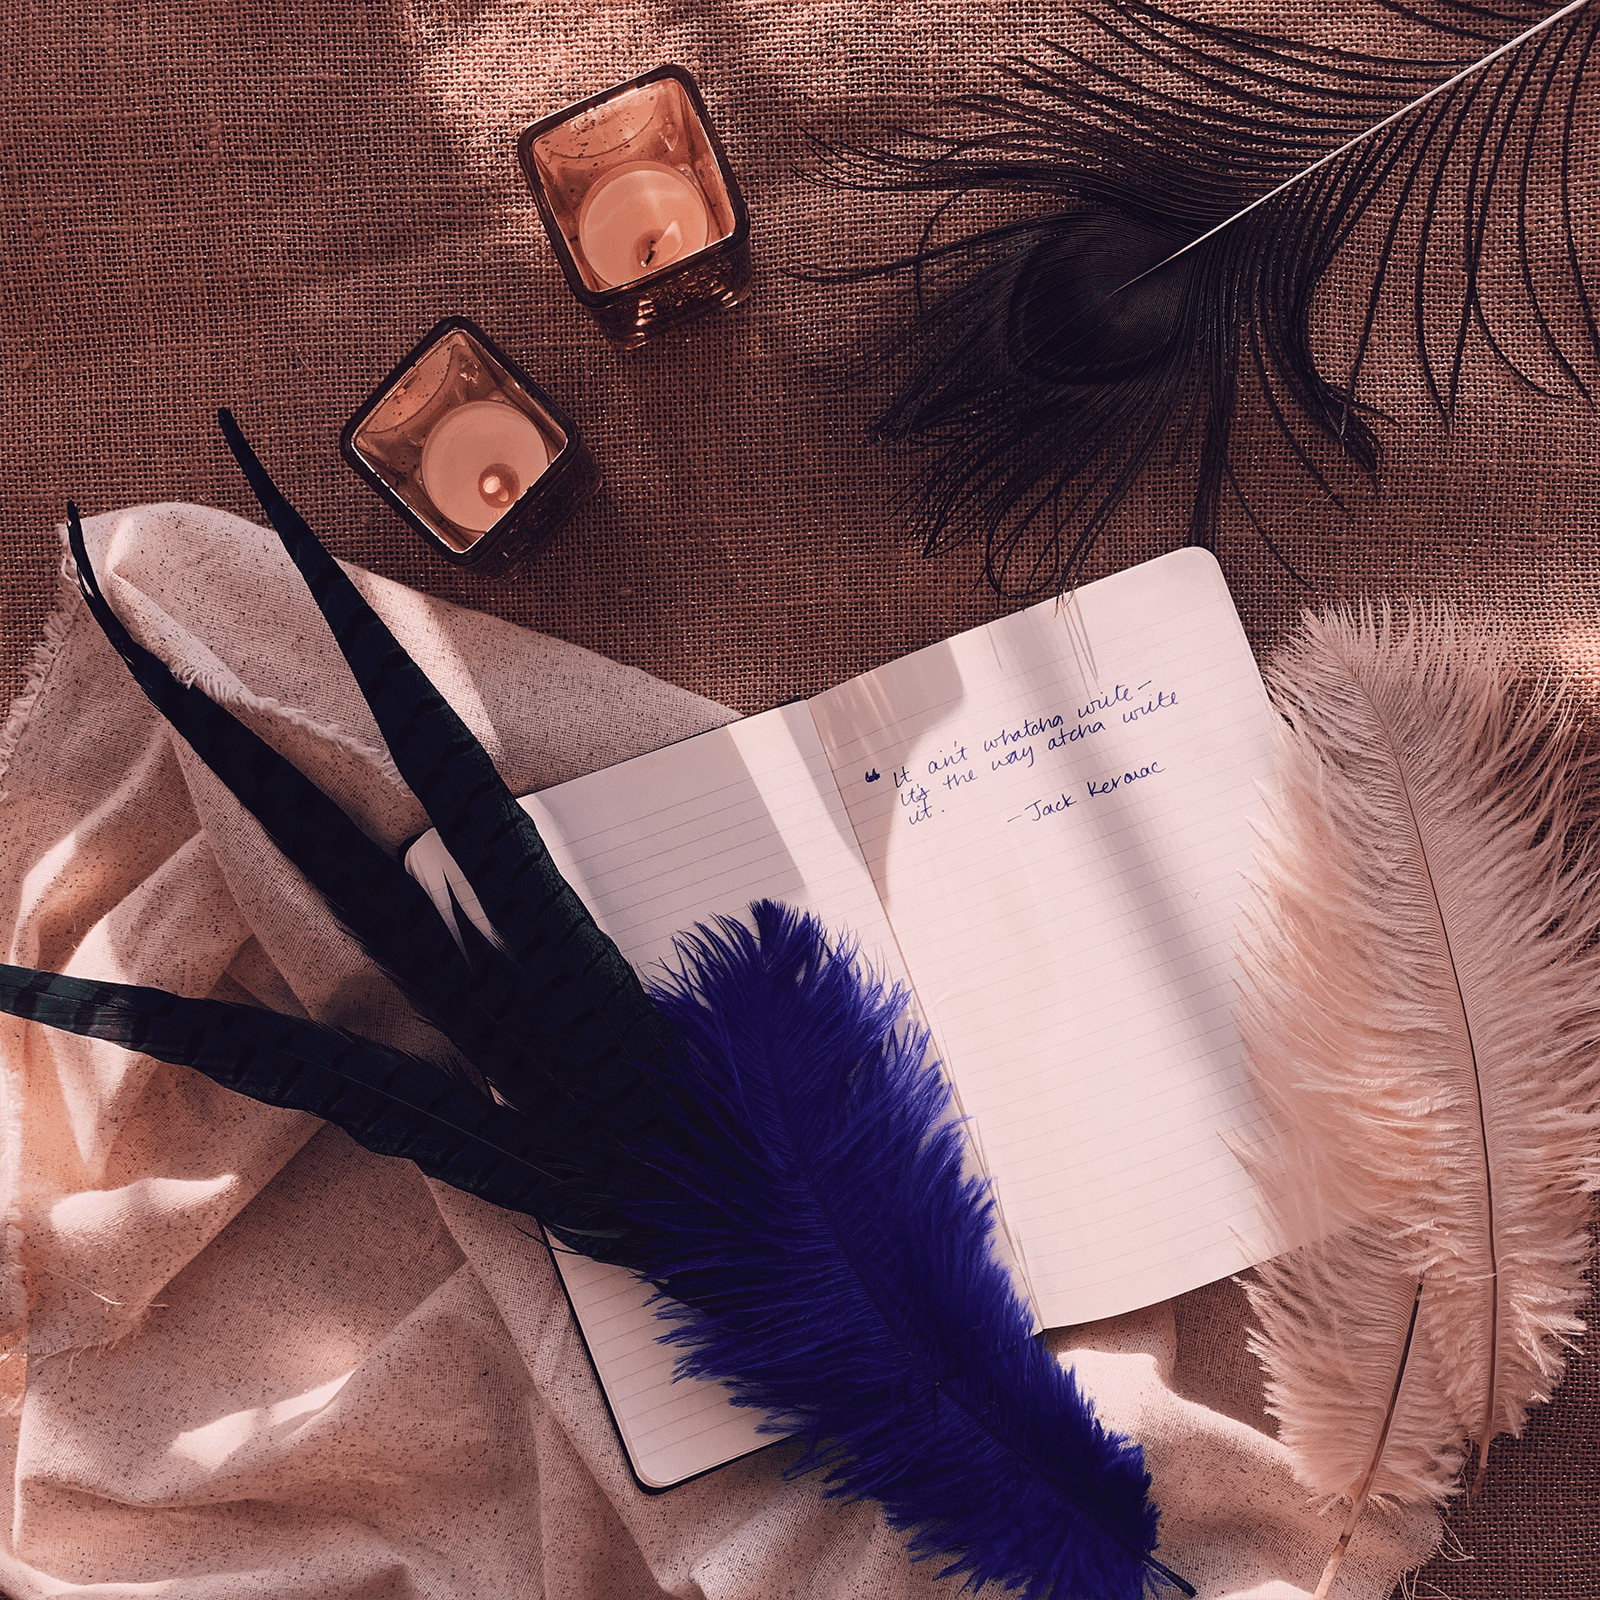 Flatlay photo of notebook, candles, and feather